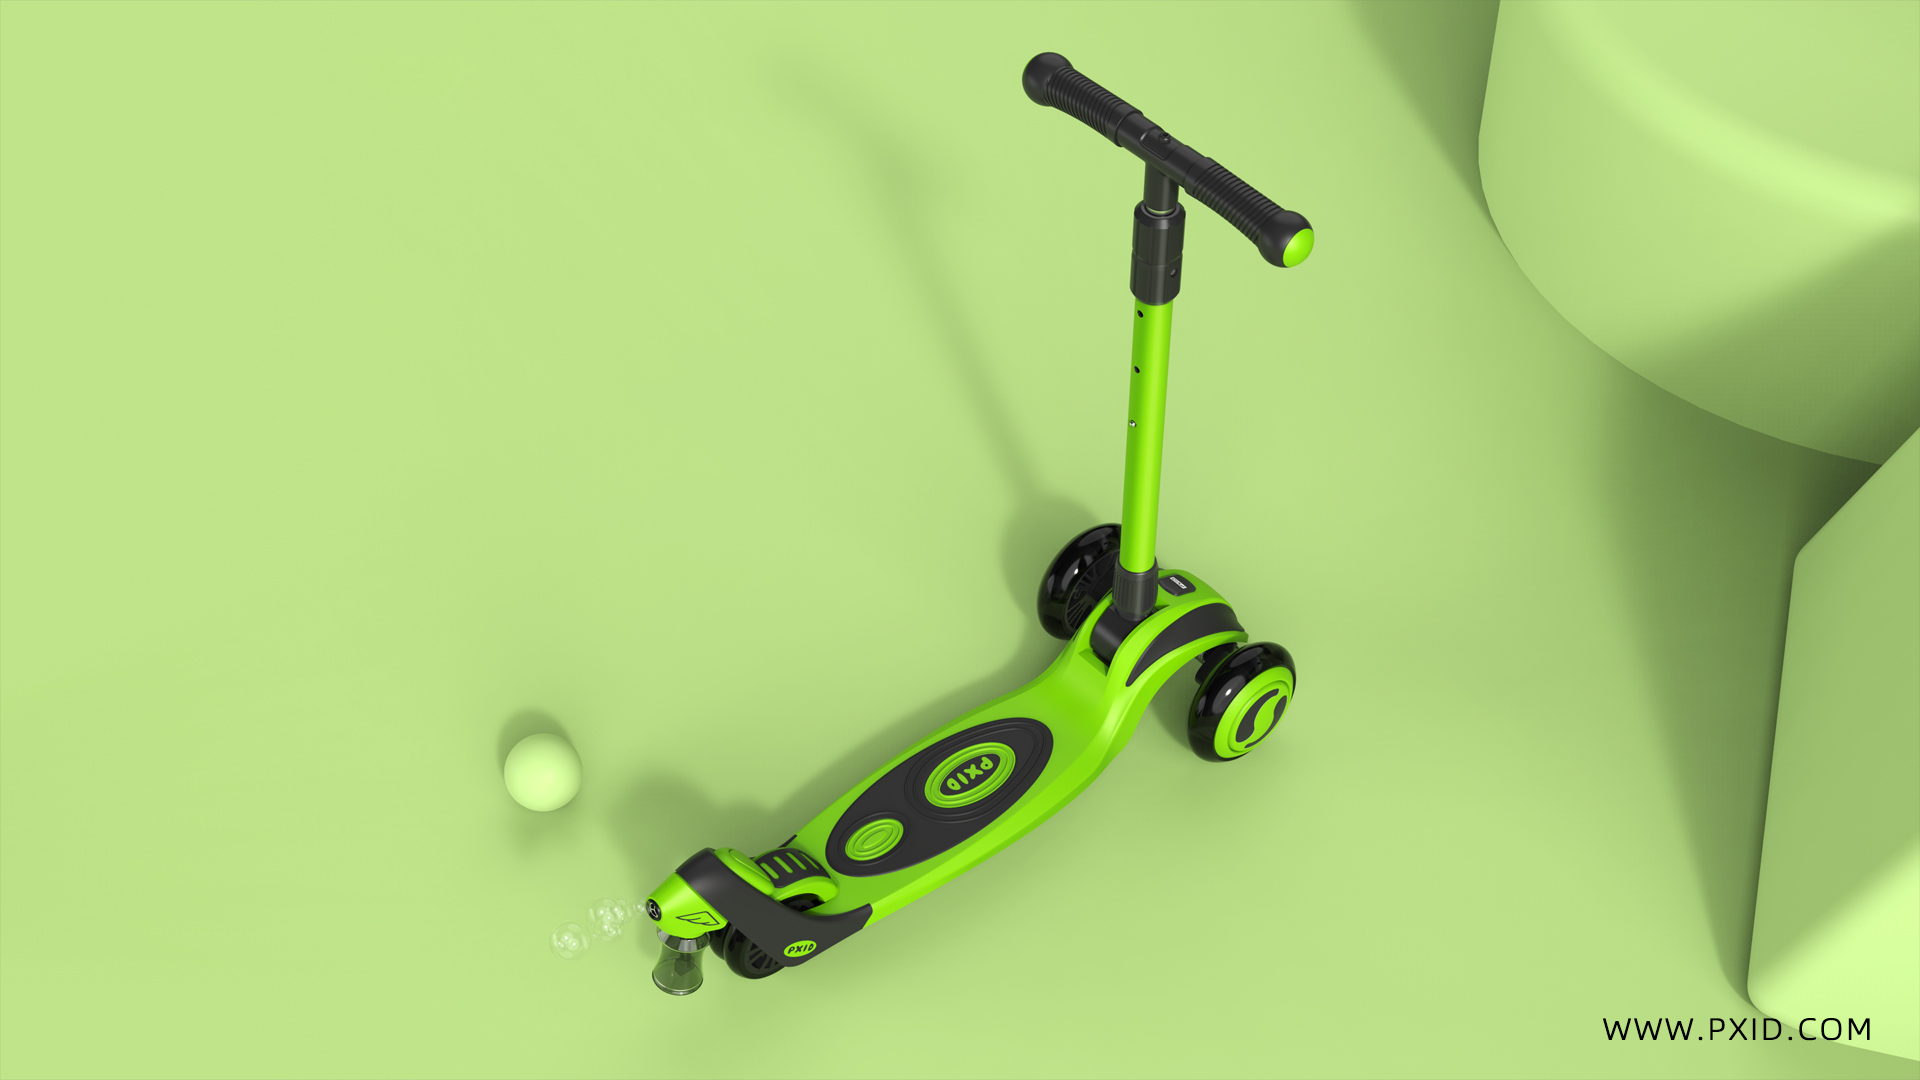 A children's scooter that can blow bubbles